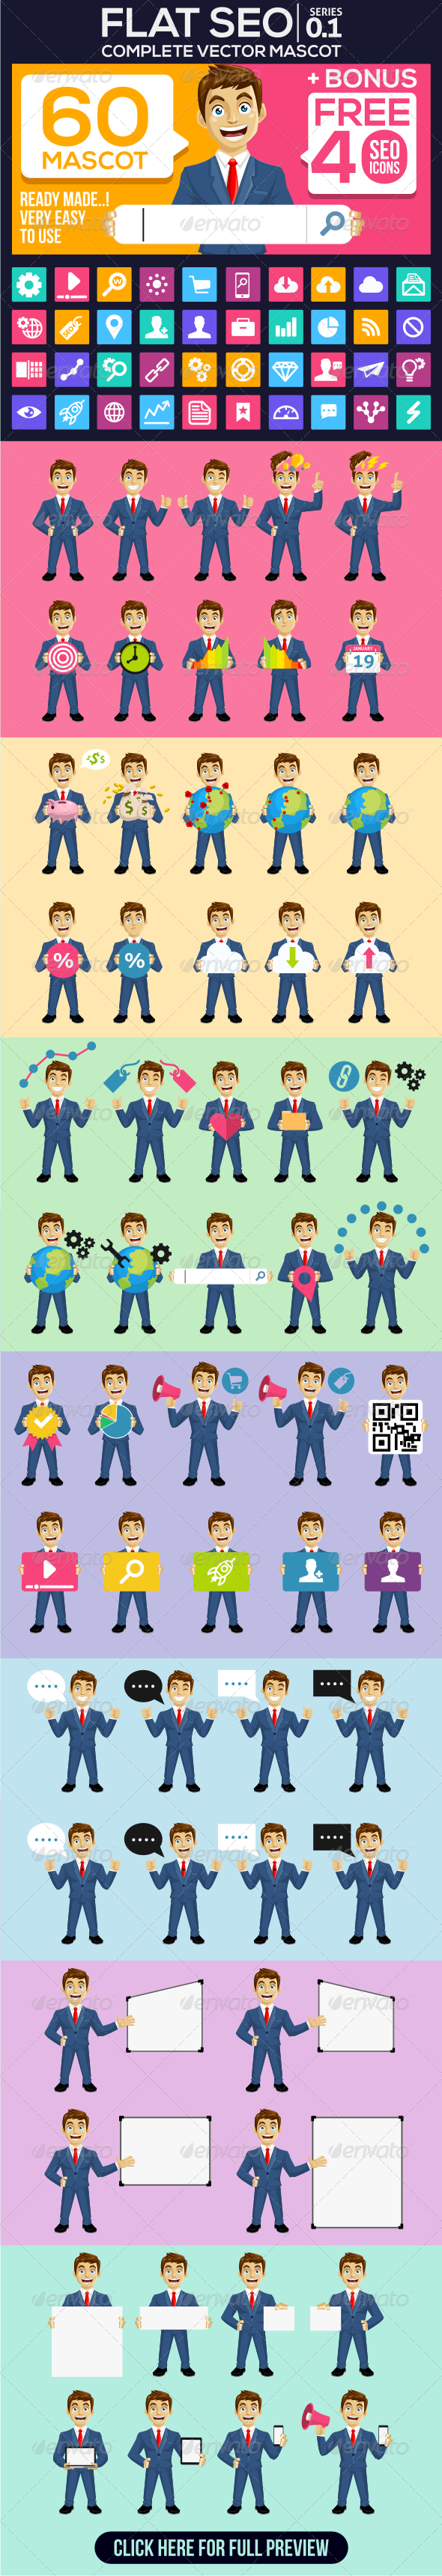 Flat Design SEO Mascot with Icon Bonus - Characters Vectors